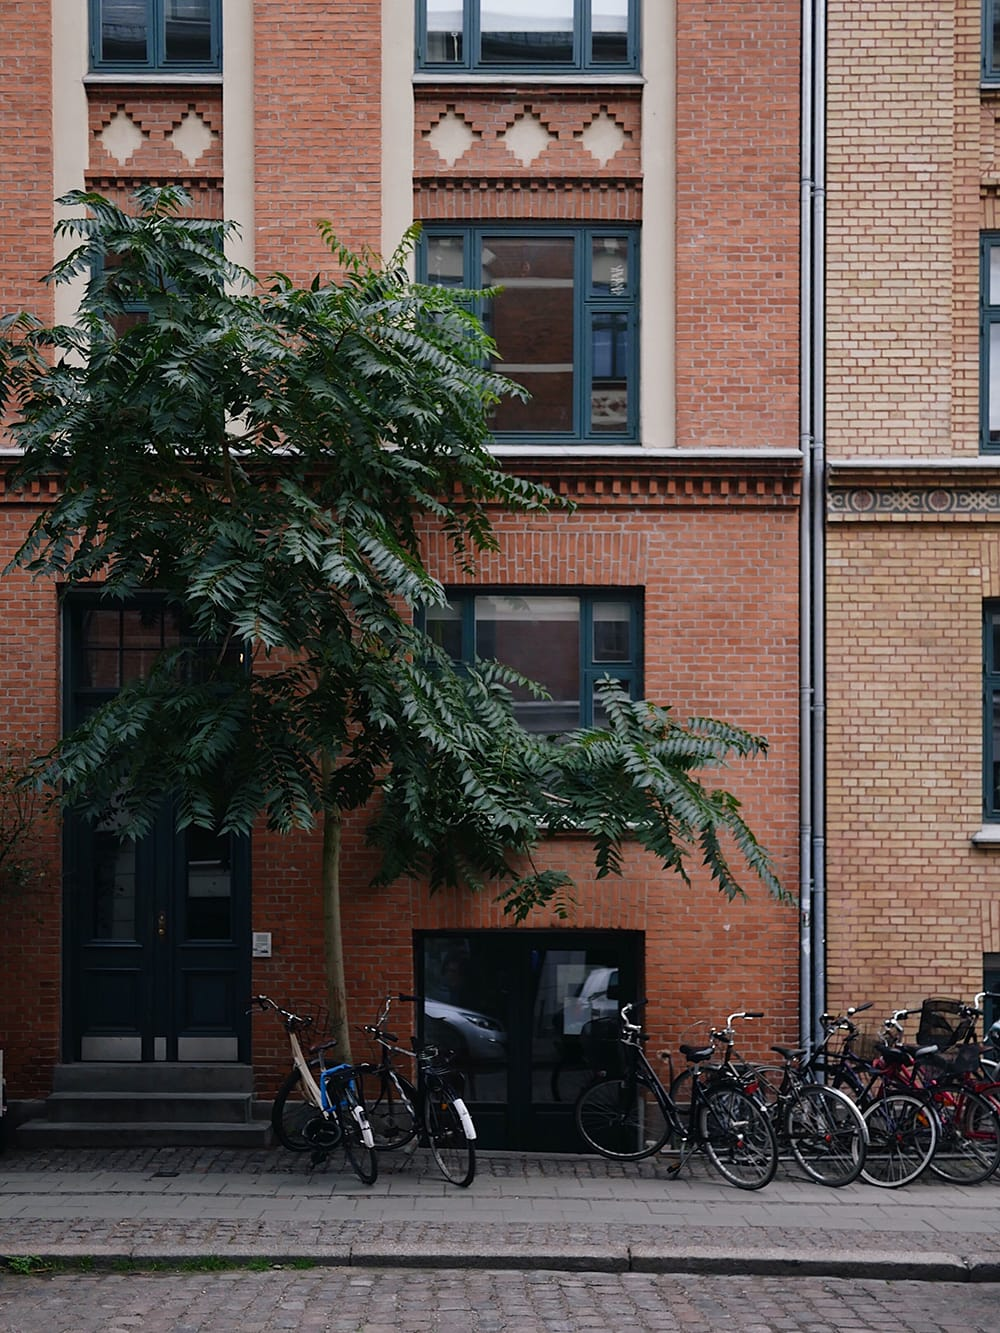 A tree growing next to the sidewalk. Copenhagen